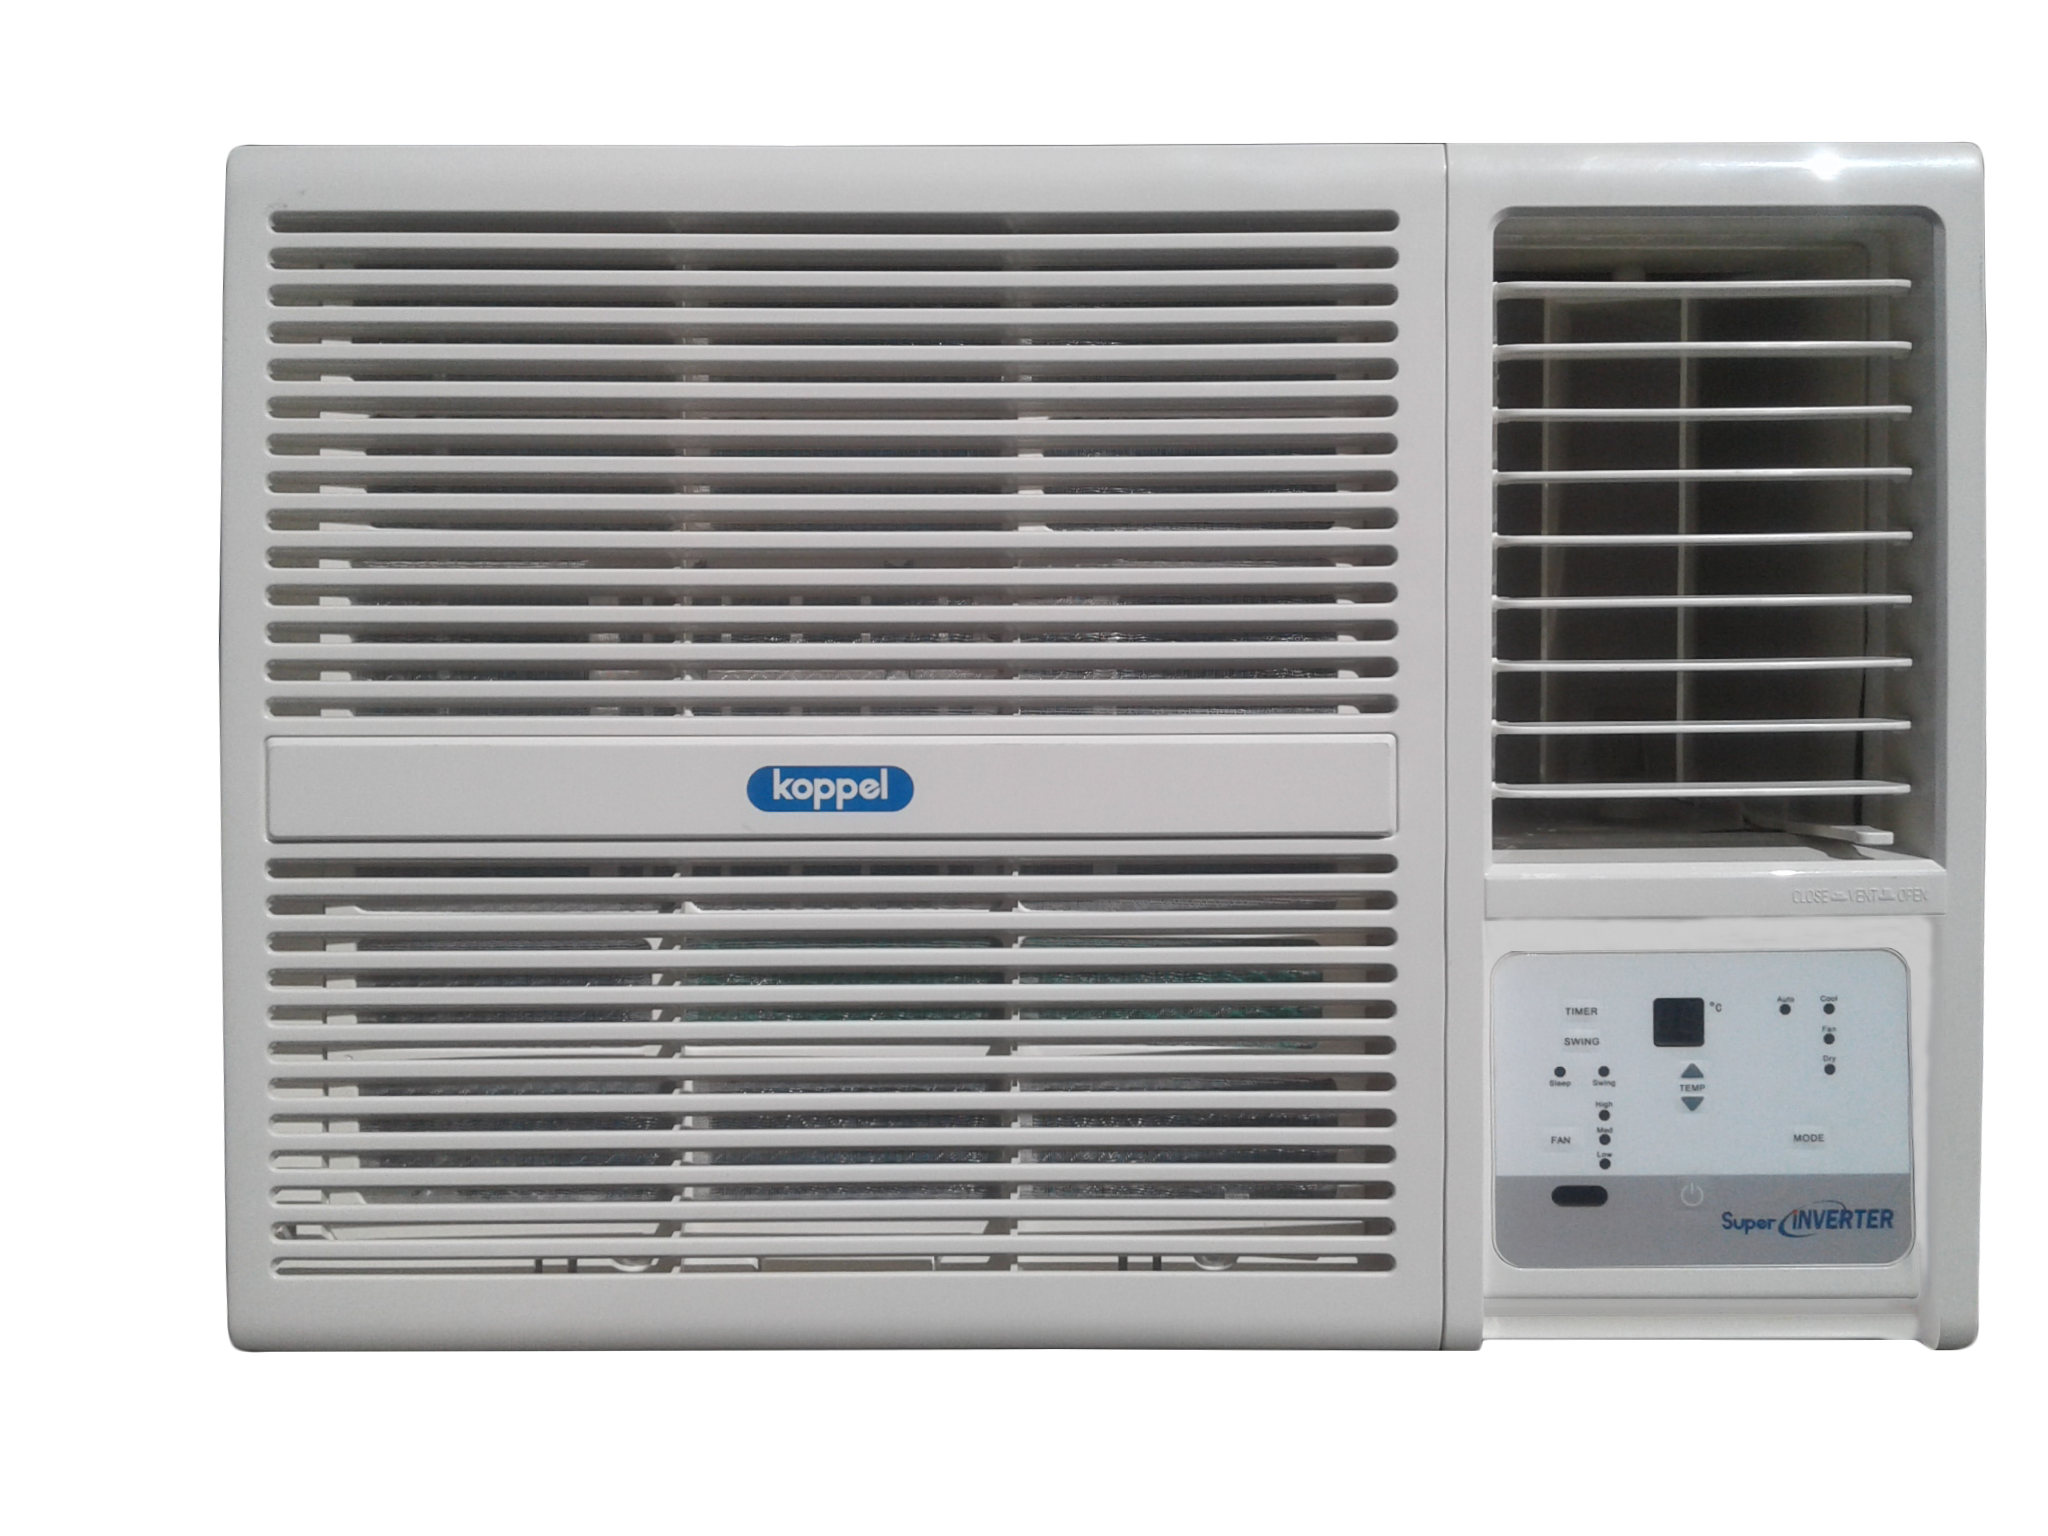 #33516C Window Type Inverter Koppel Best 4823 Inverter Window Ac photos with 2048x1536 px on helpvideos.info - Air Conditioners, Air Coolers and more